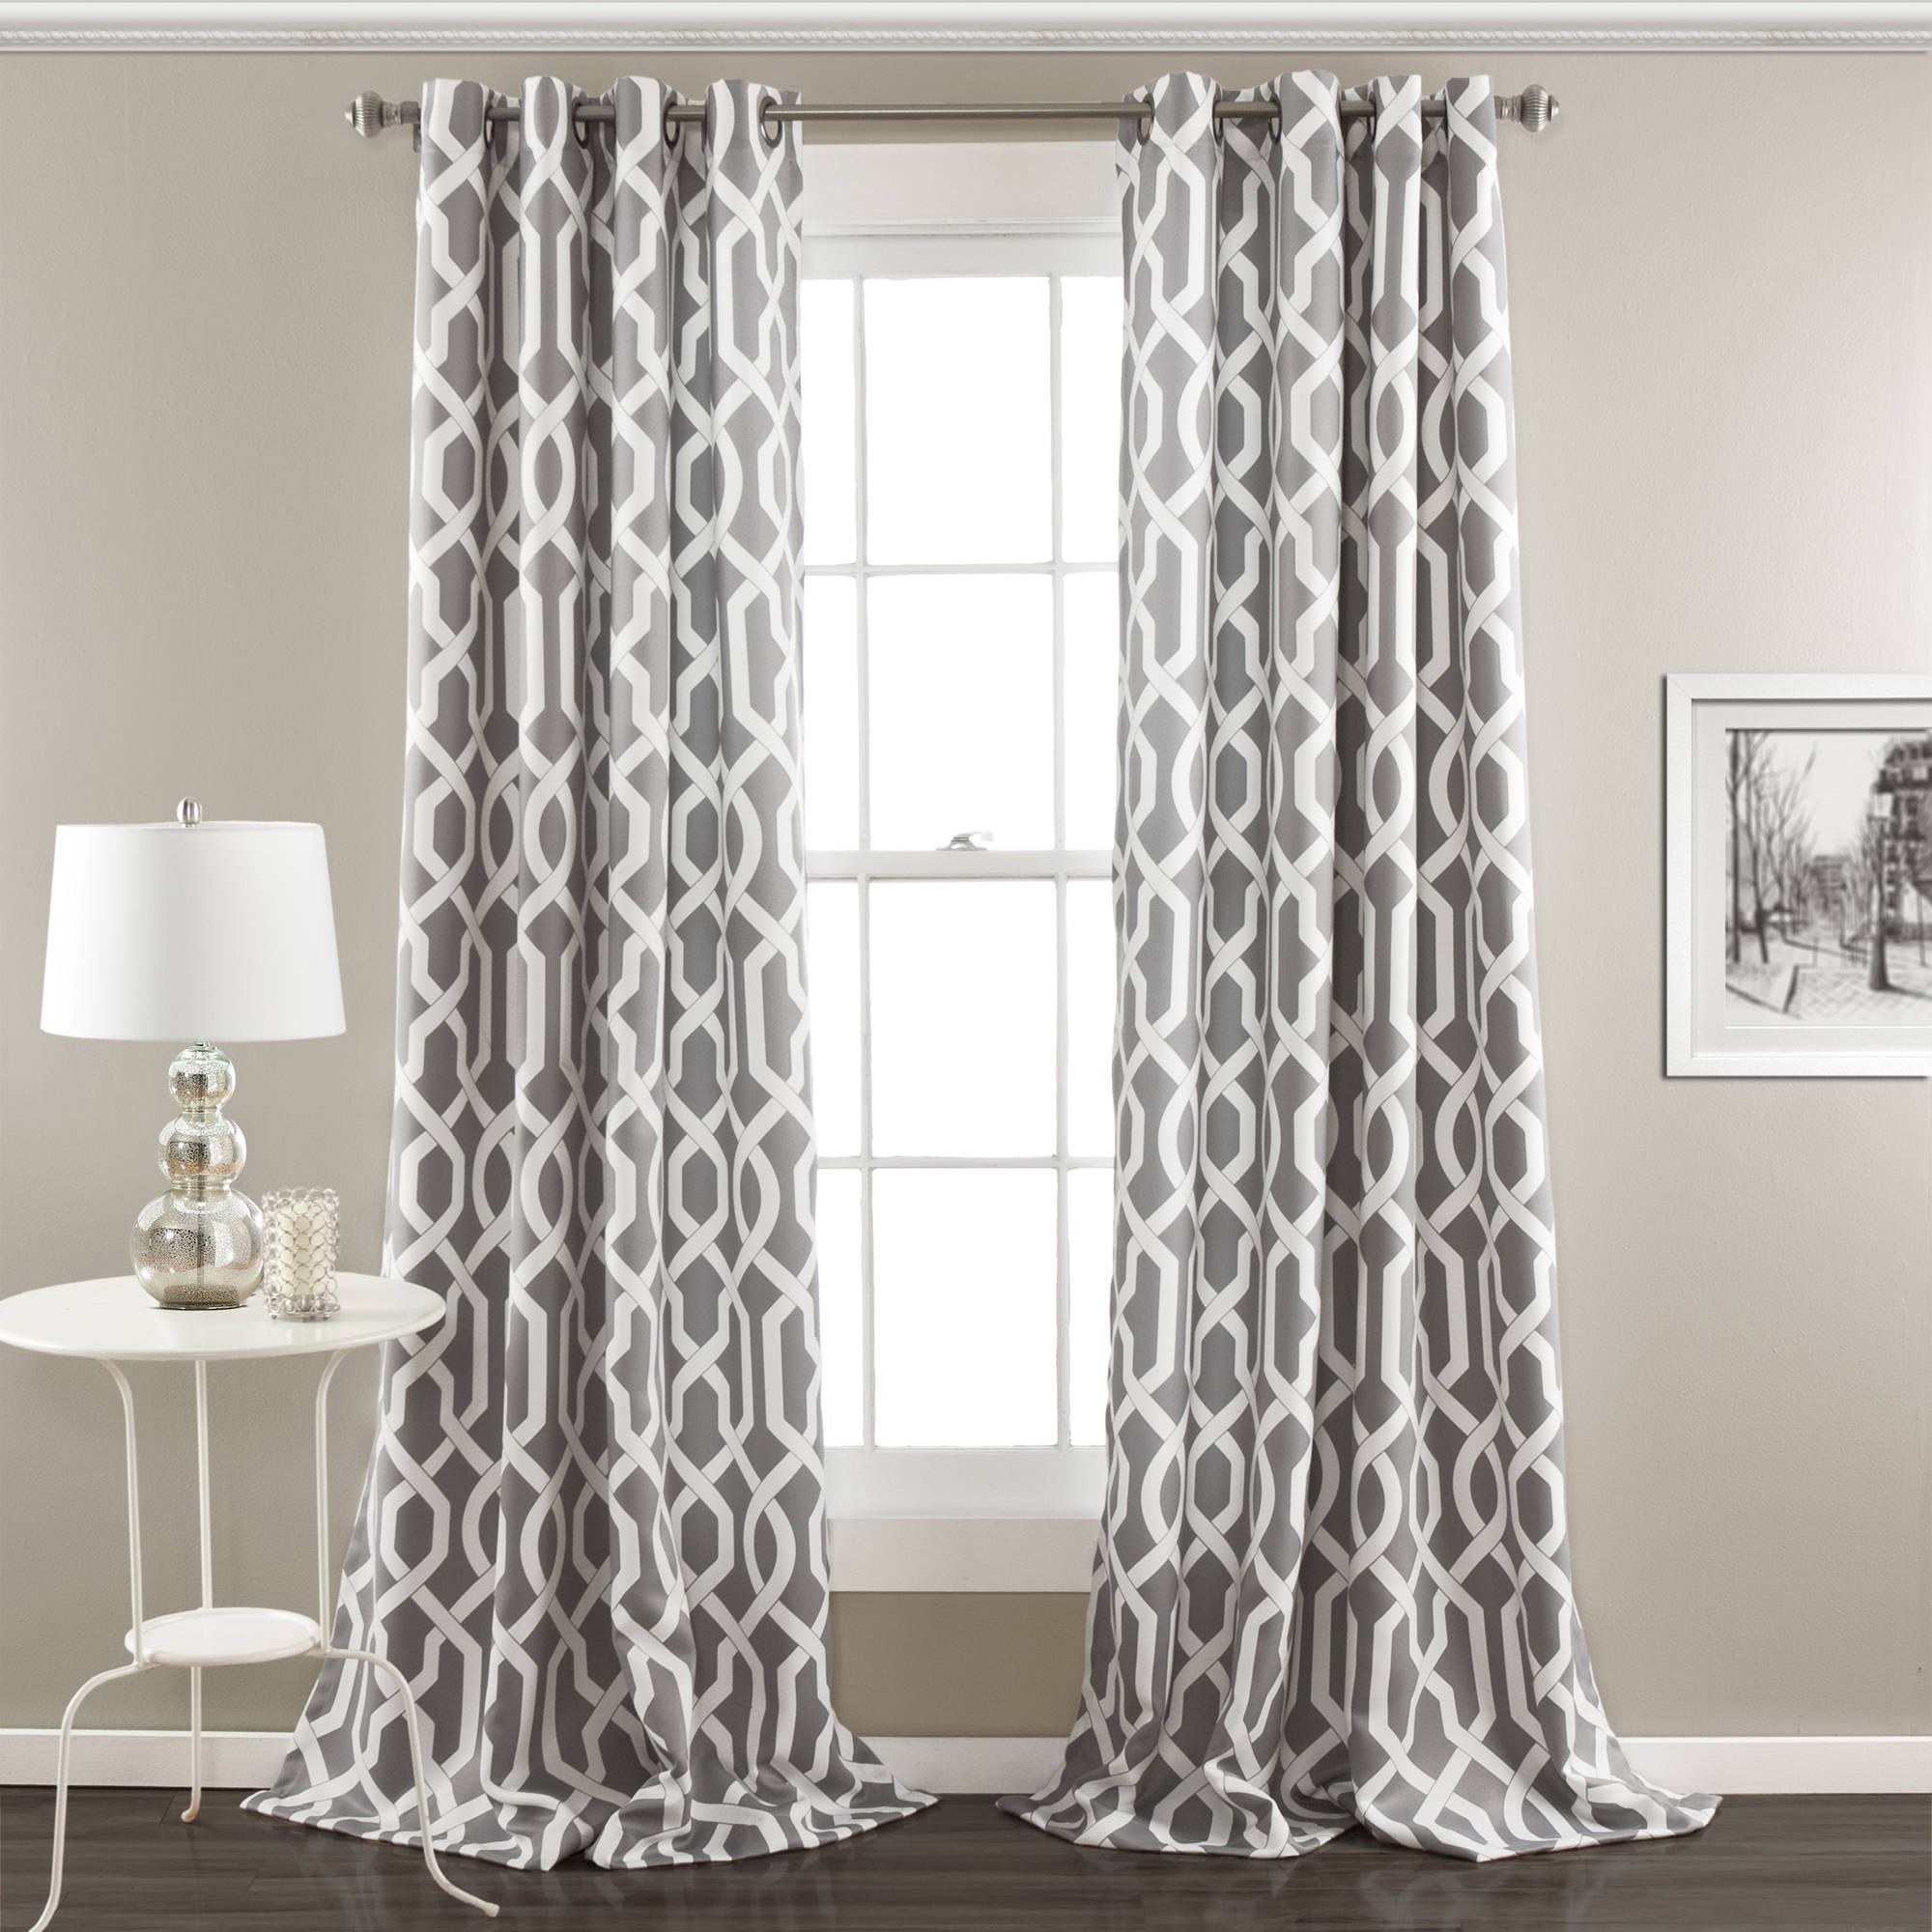 Greek Key Trim Curtains Lavender Room Darkening Curt